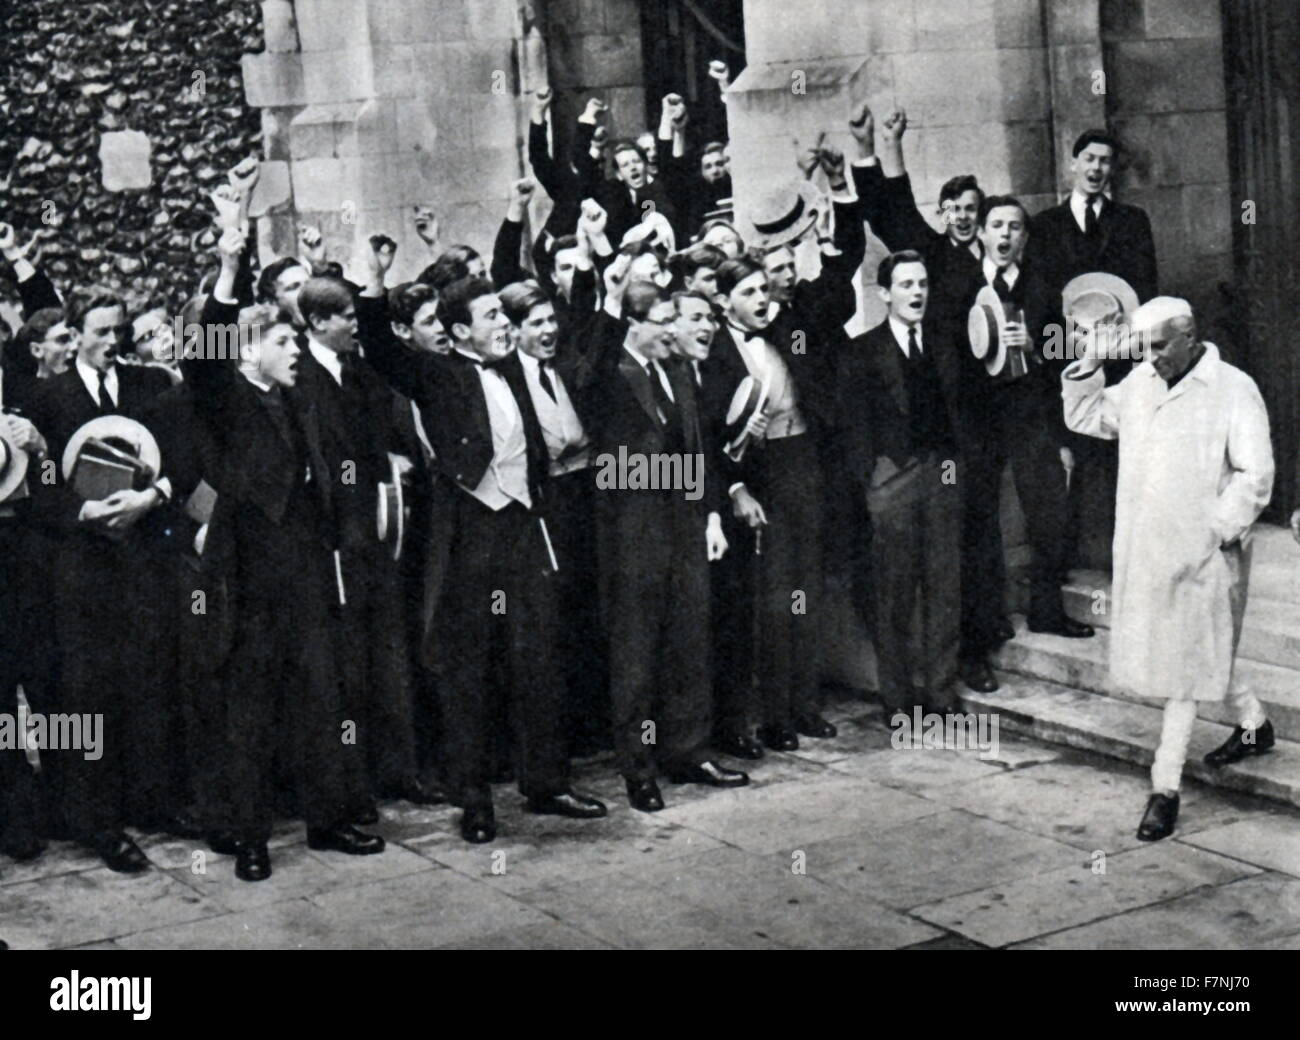 Photograph of Prime Minister Jawaharlal Nehru (1889-1964) during the Commonwealth Conference. Dated 1960 - Stock Image